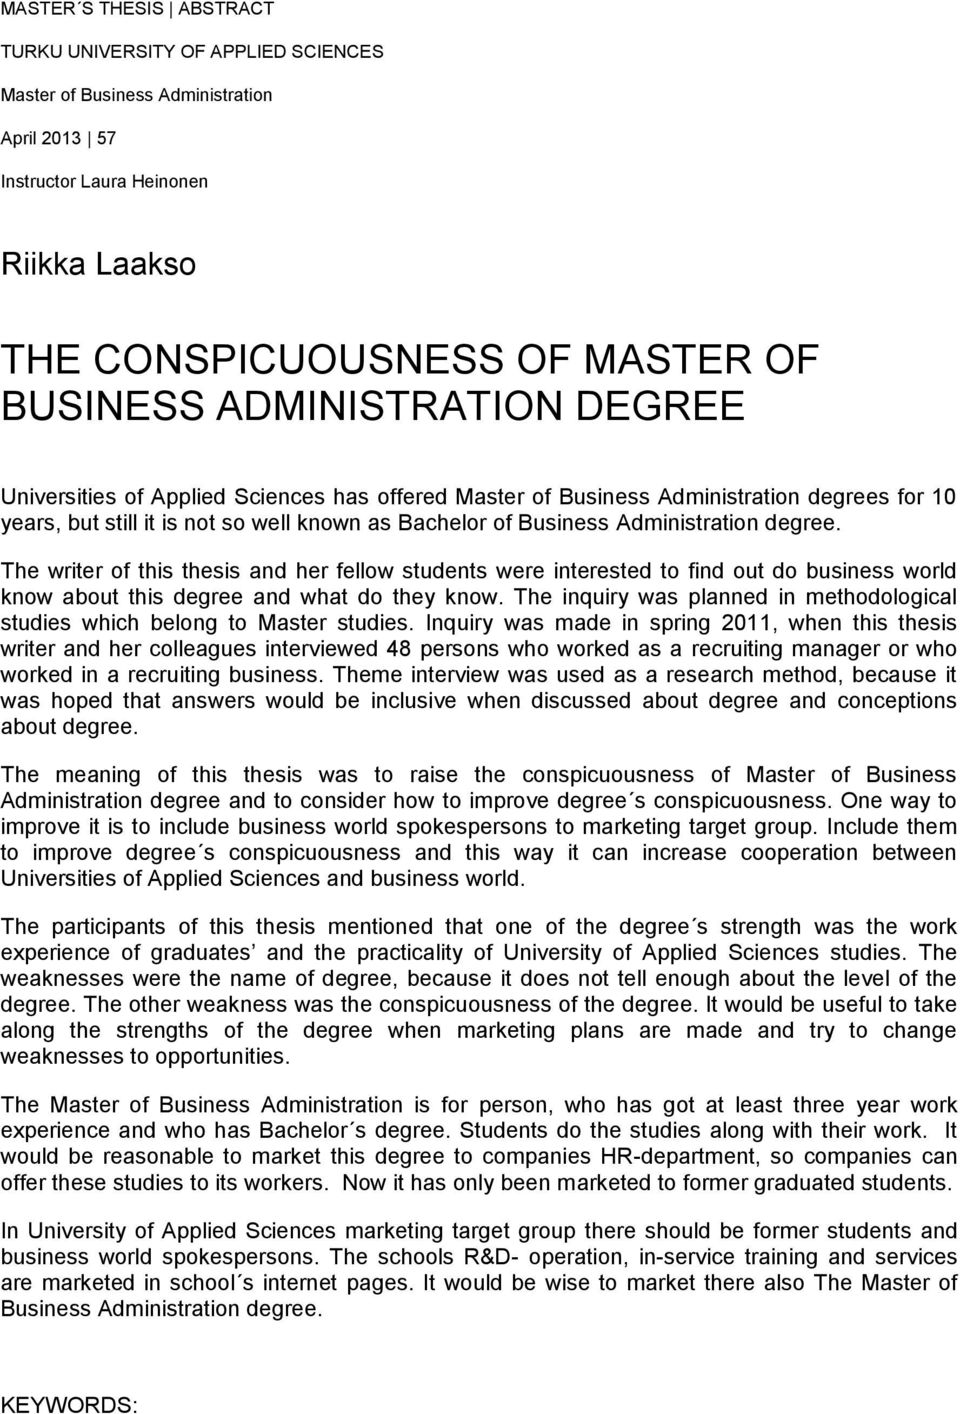 degree. The writer of this thesis and her fellow students were interested to find out do business world know about this degree and what do they know.